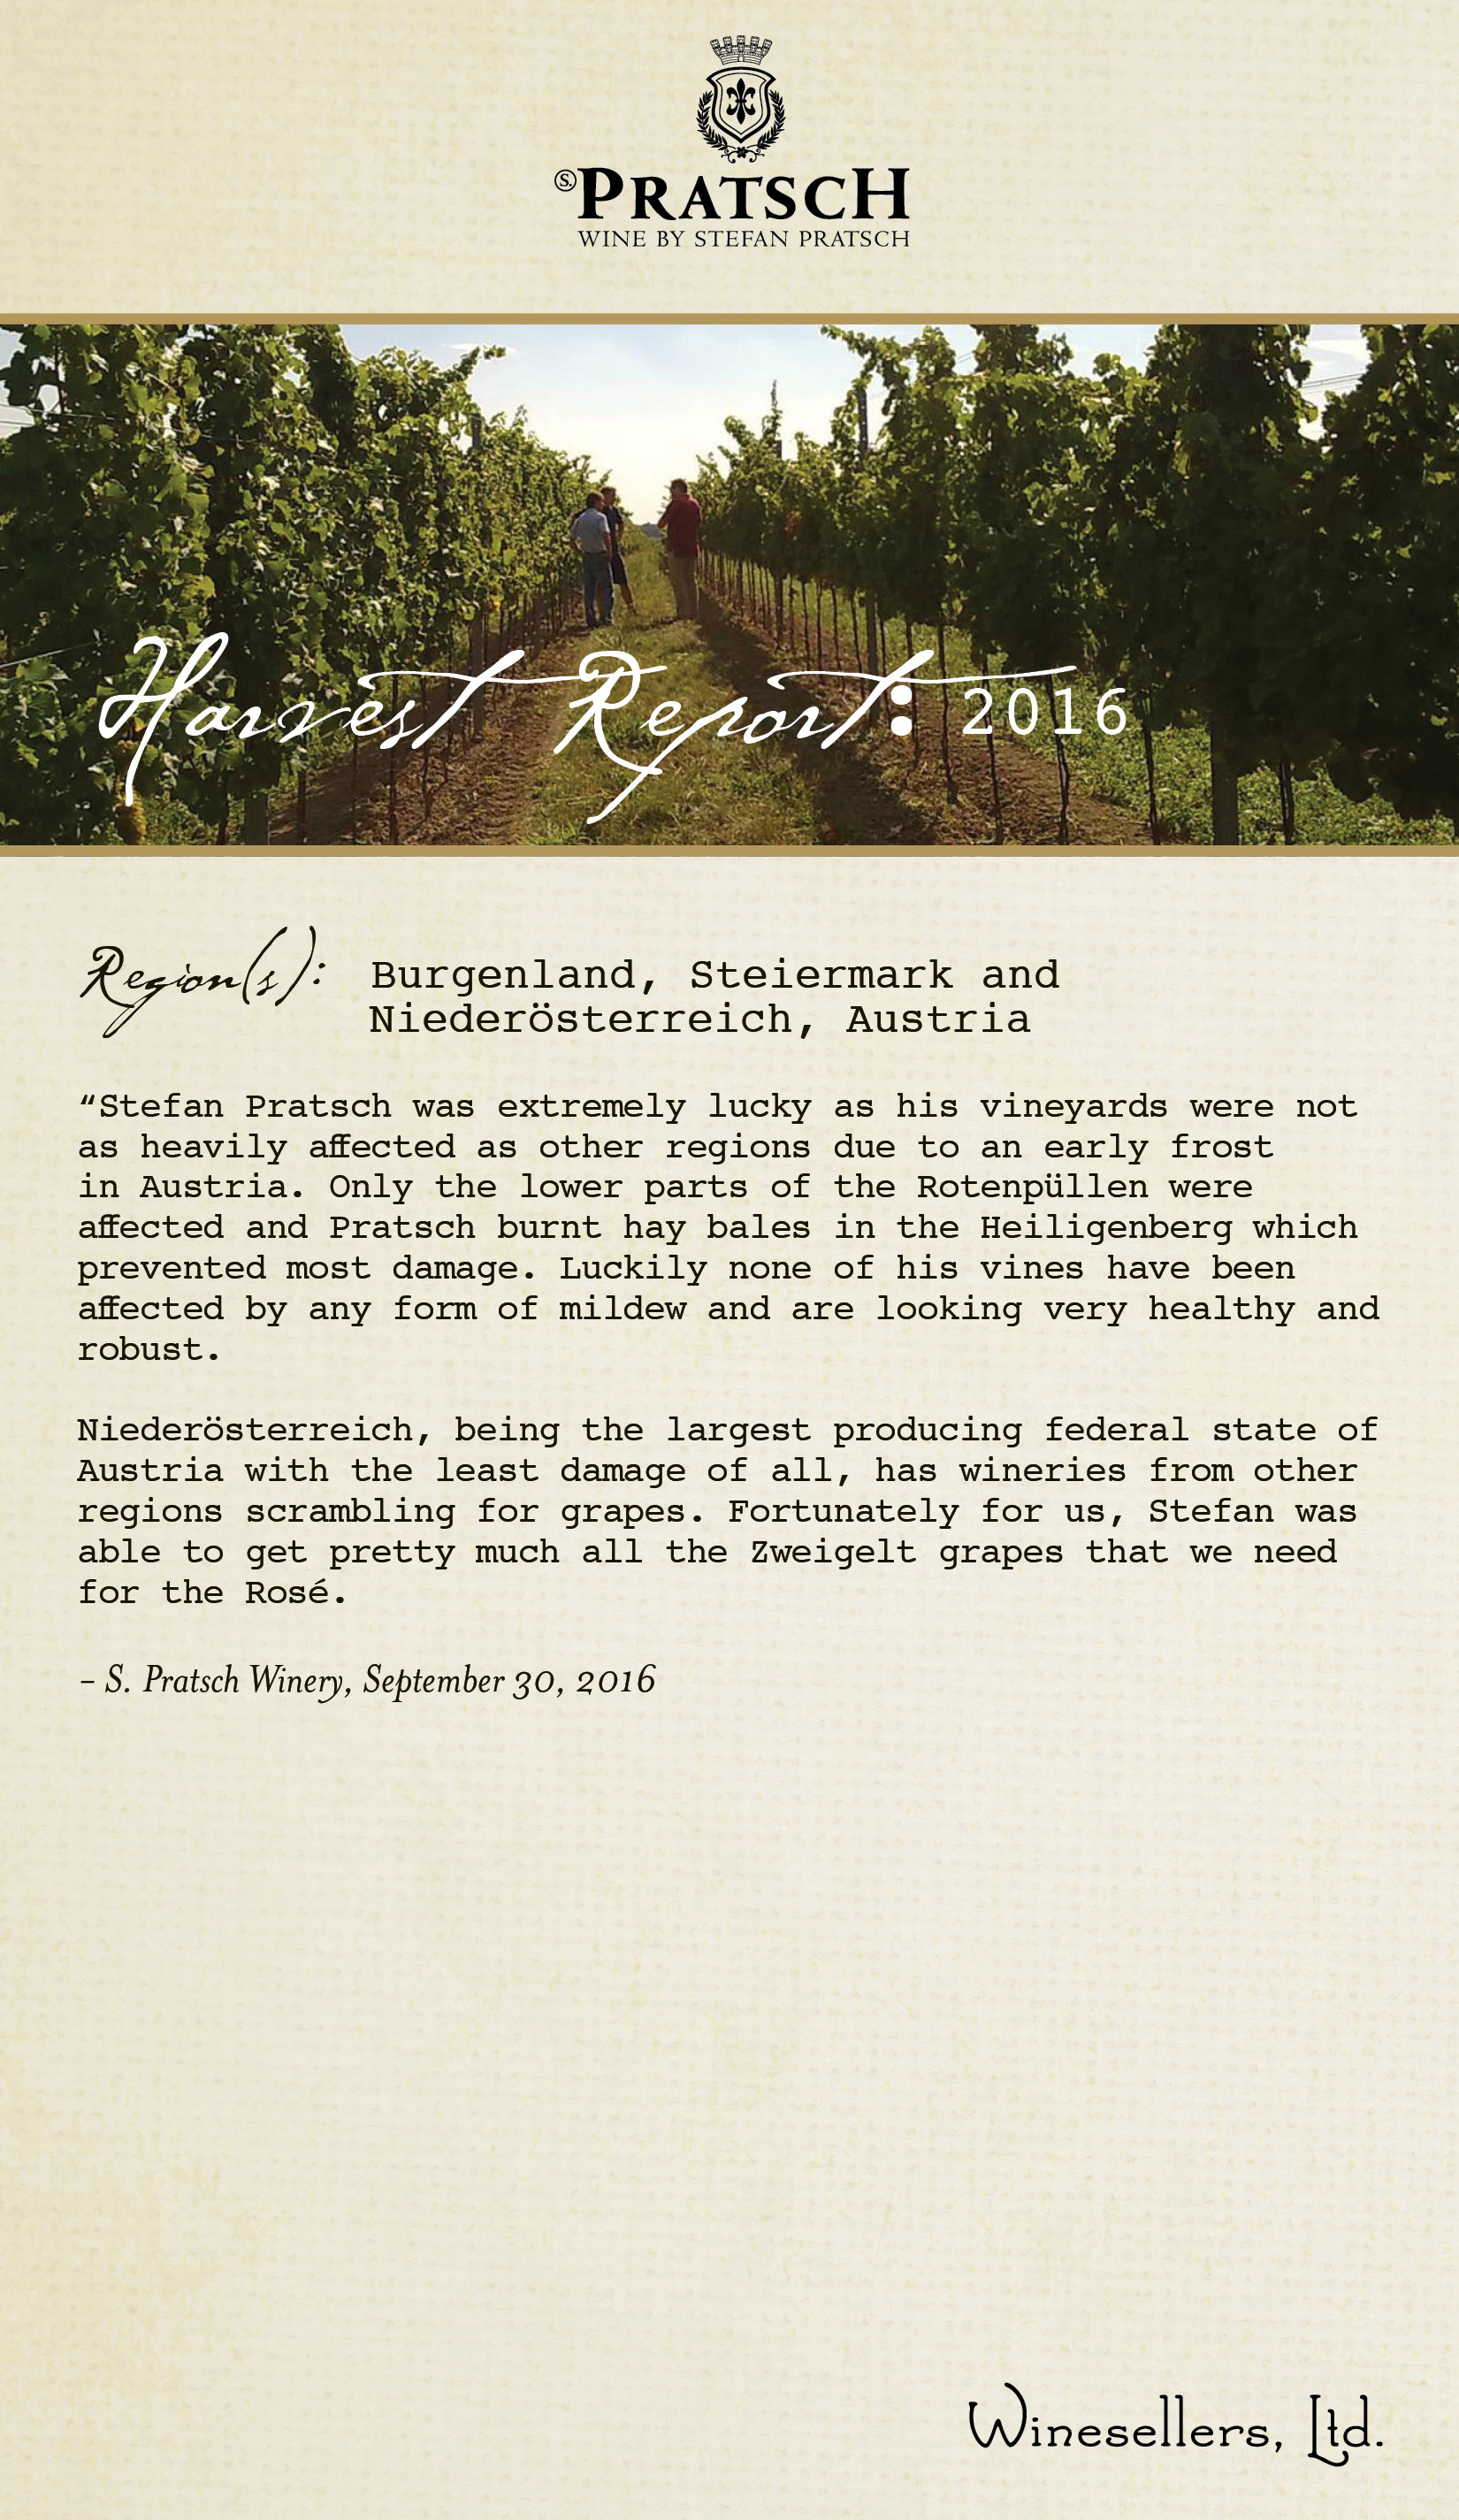 Winesellers, Ltd. Presents s. Pratsch Harvest 2016